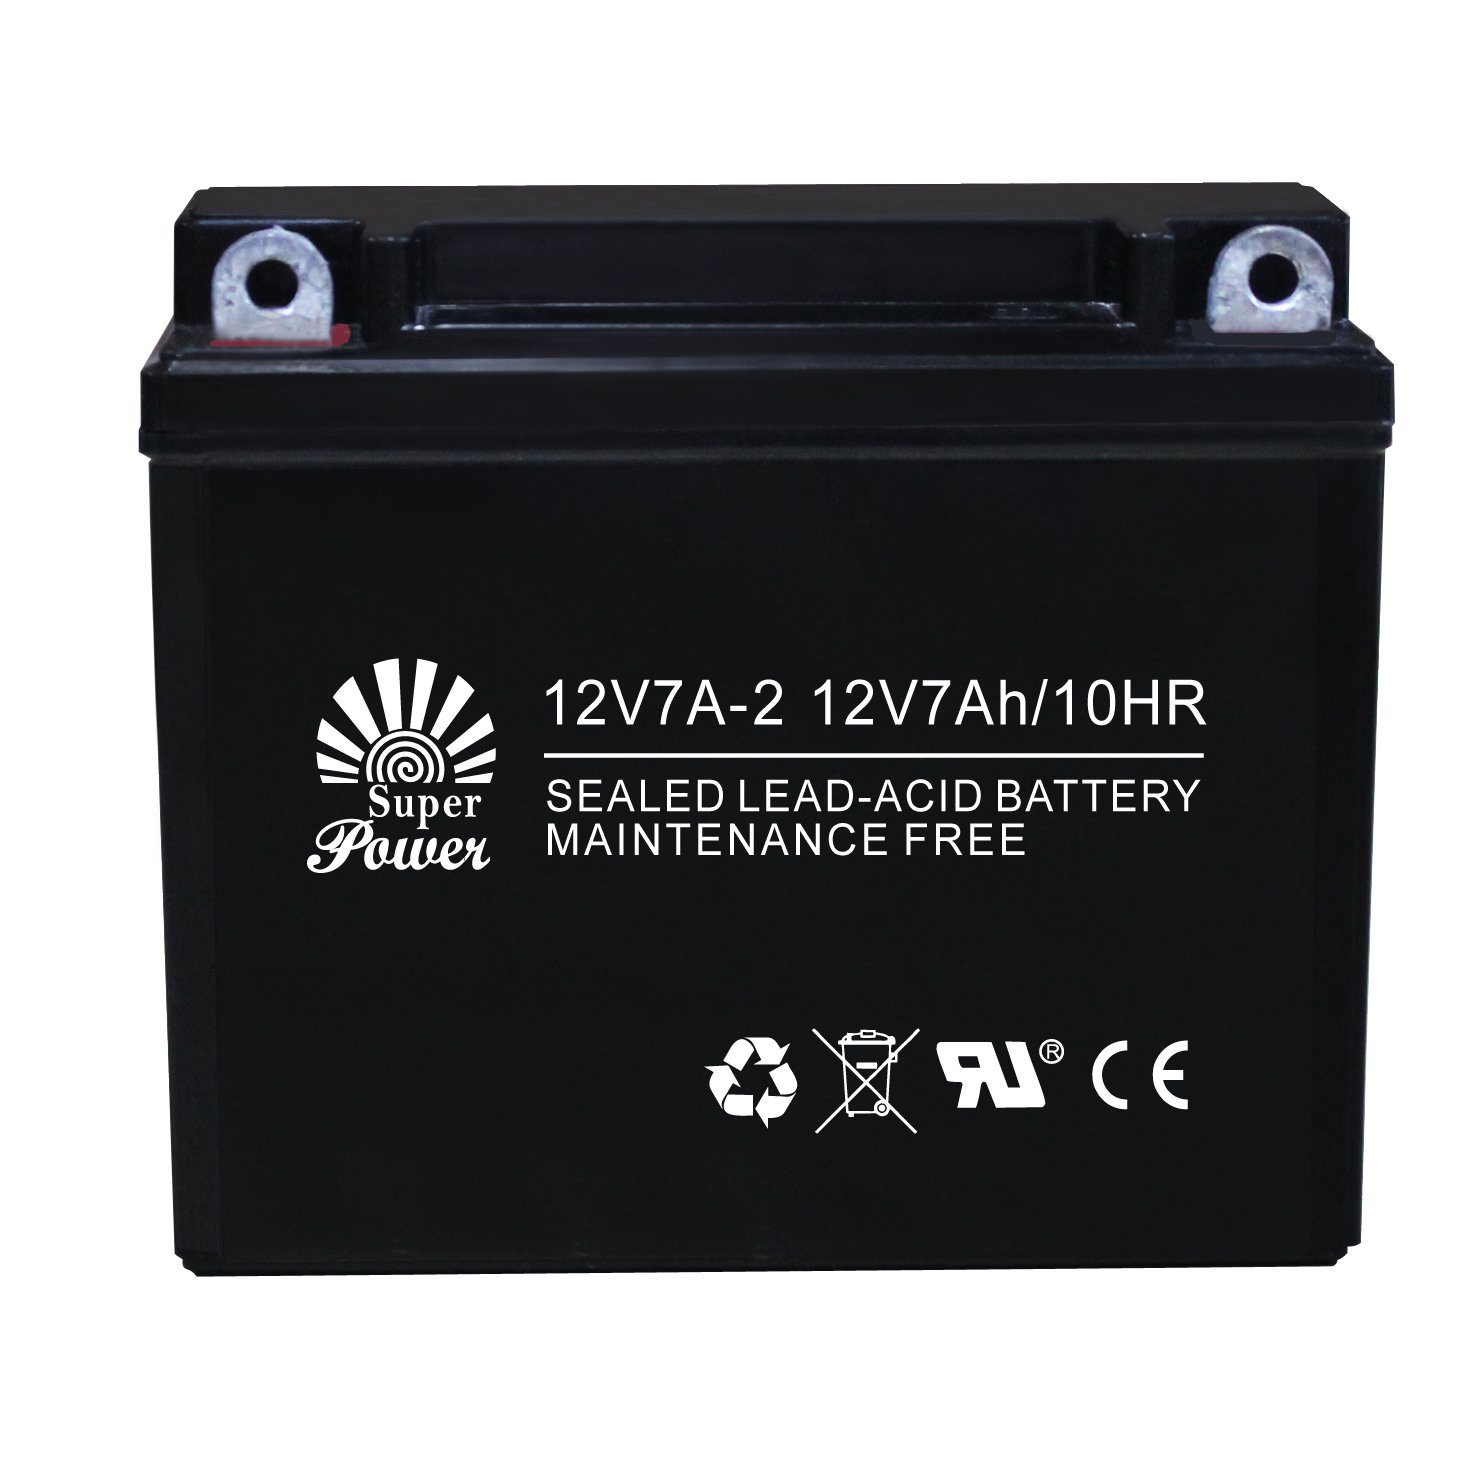 Sealed Maintenance Free Motorcycle Battery 12V7A-2